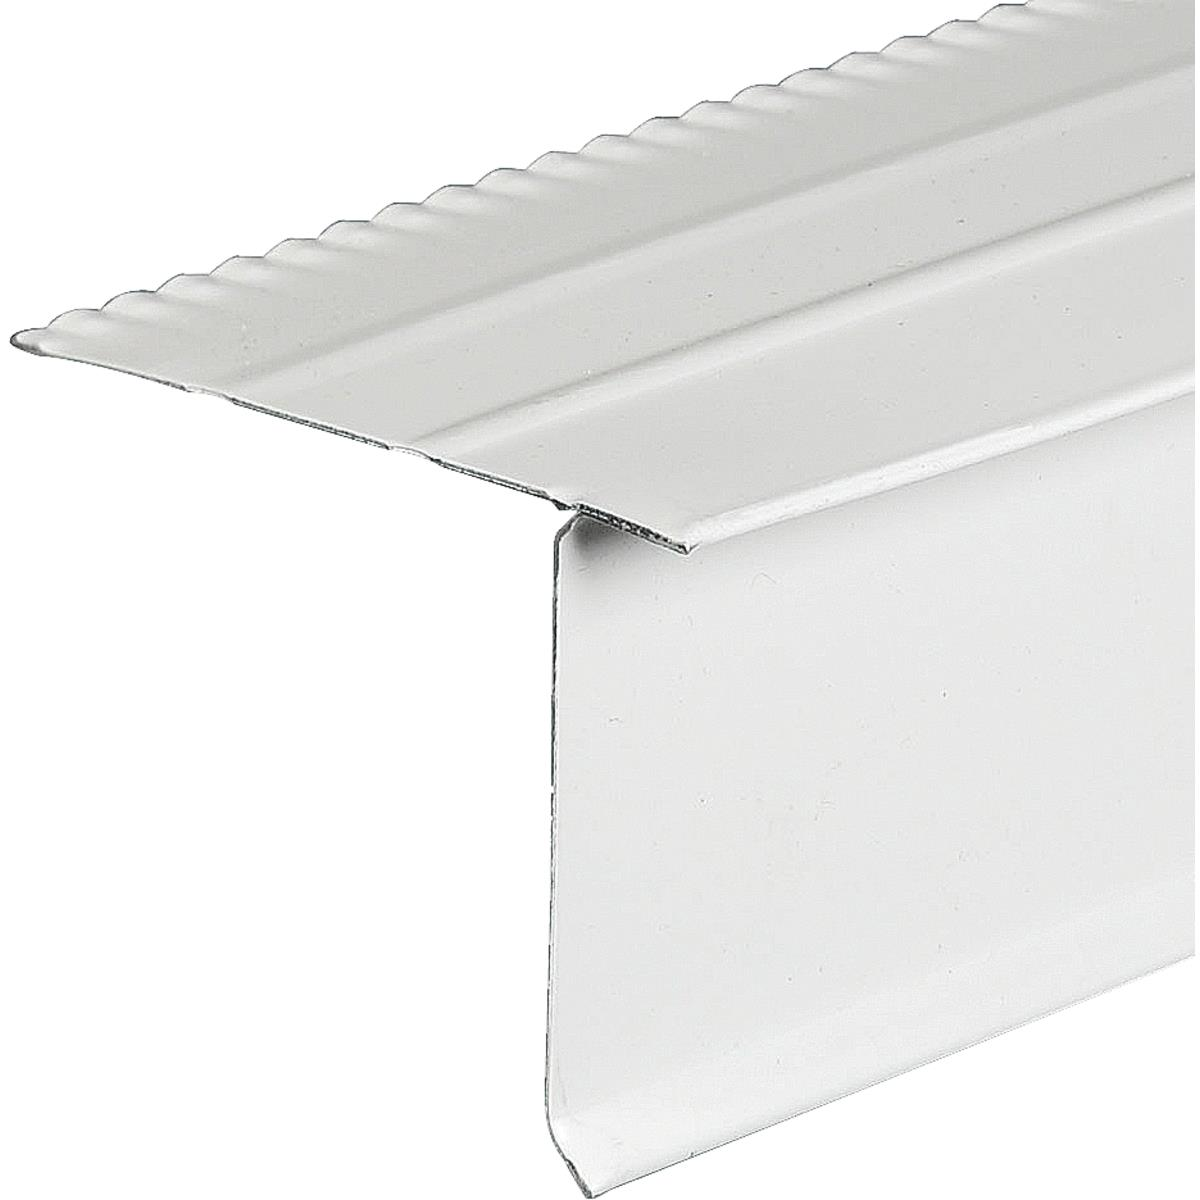 Amerimax Aluminum F Style Overhanging Roof & Drip Edge Flashing 5515500120